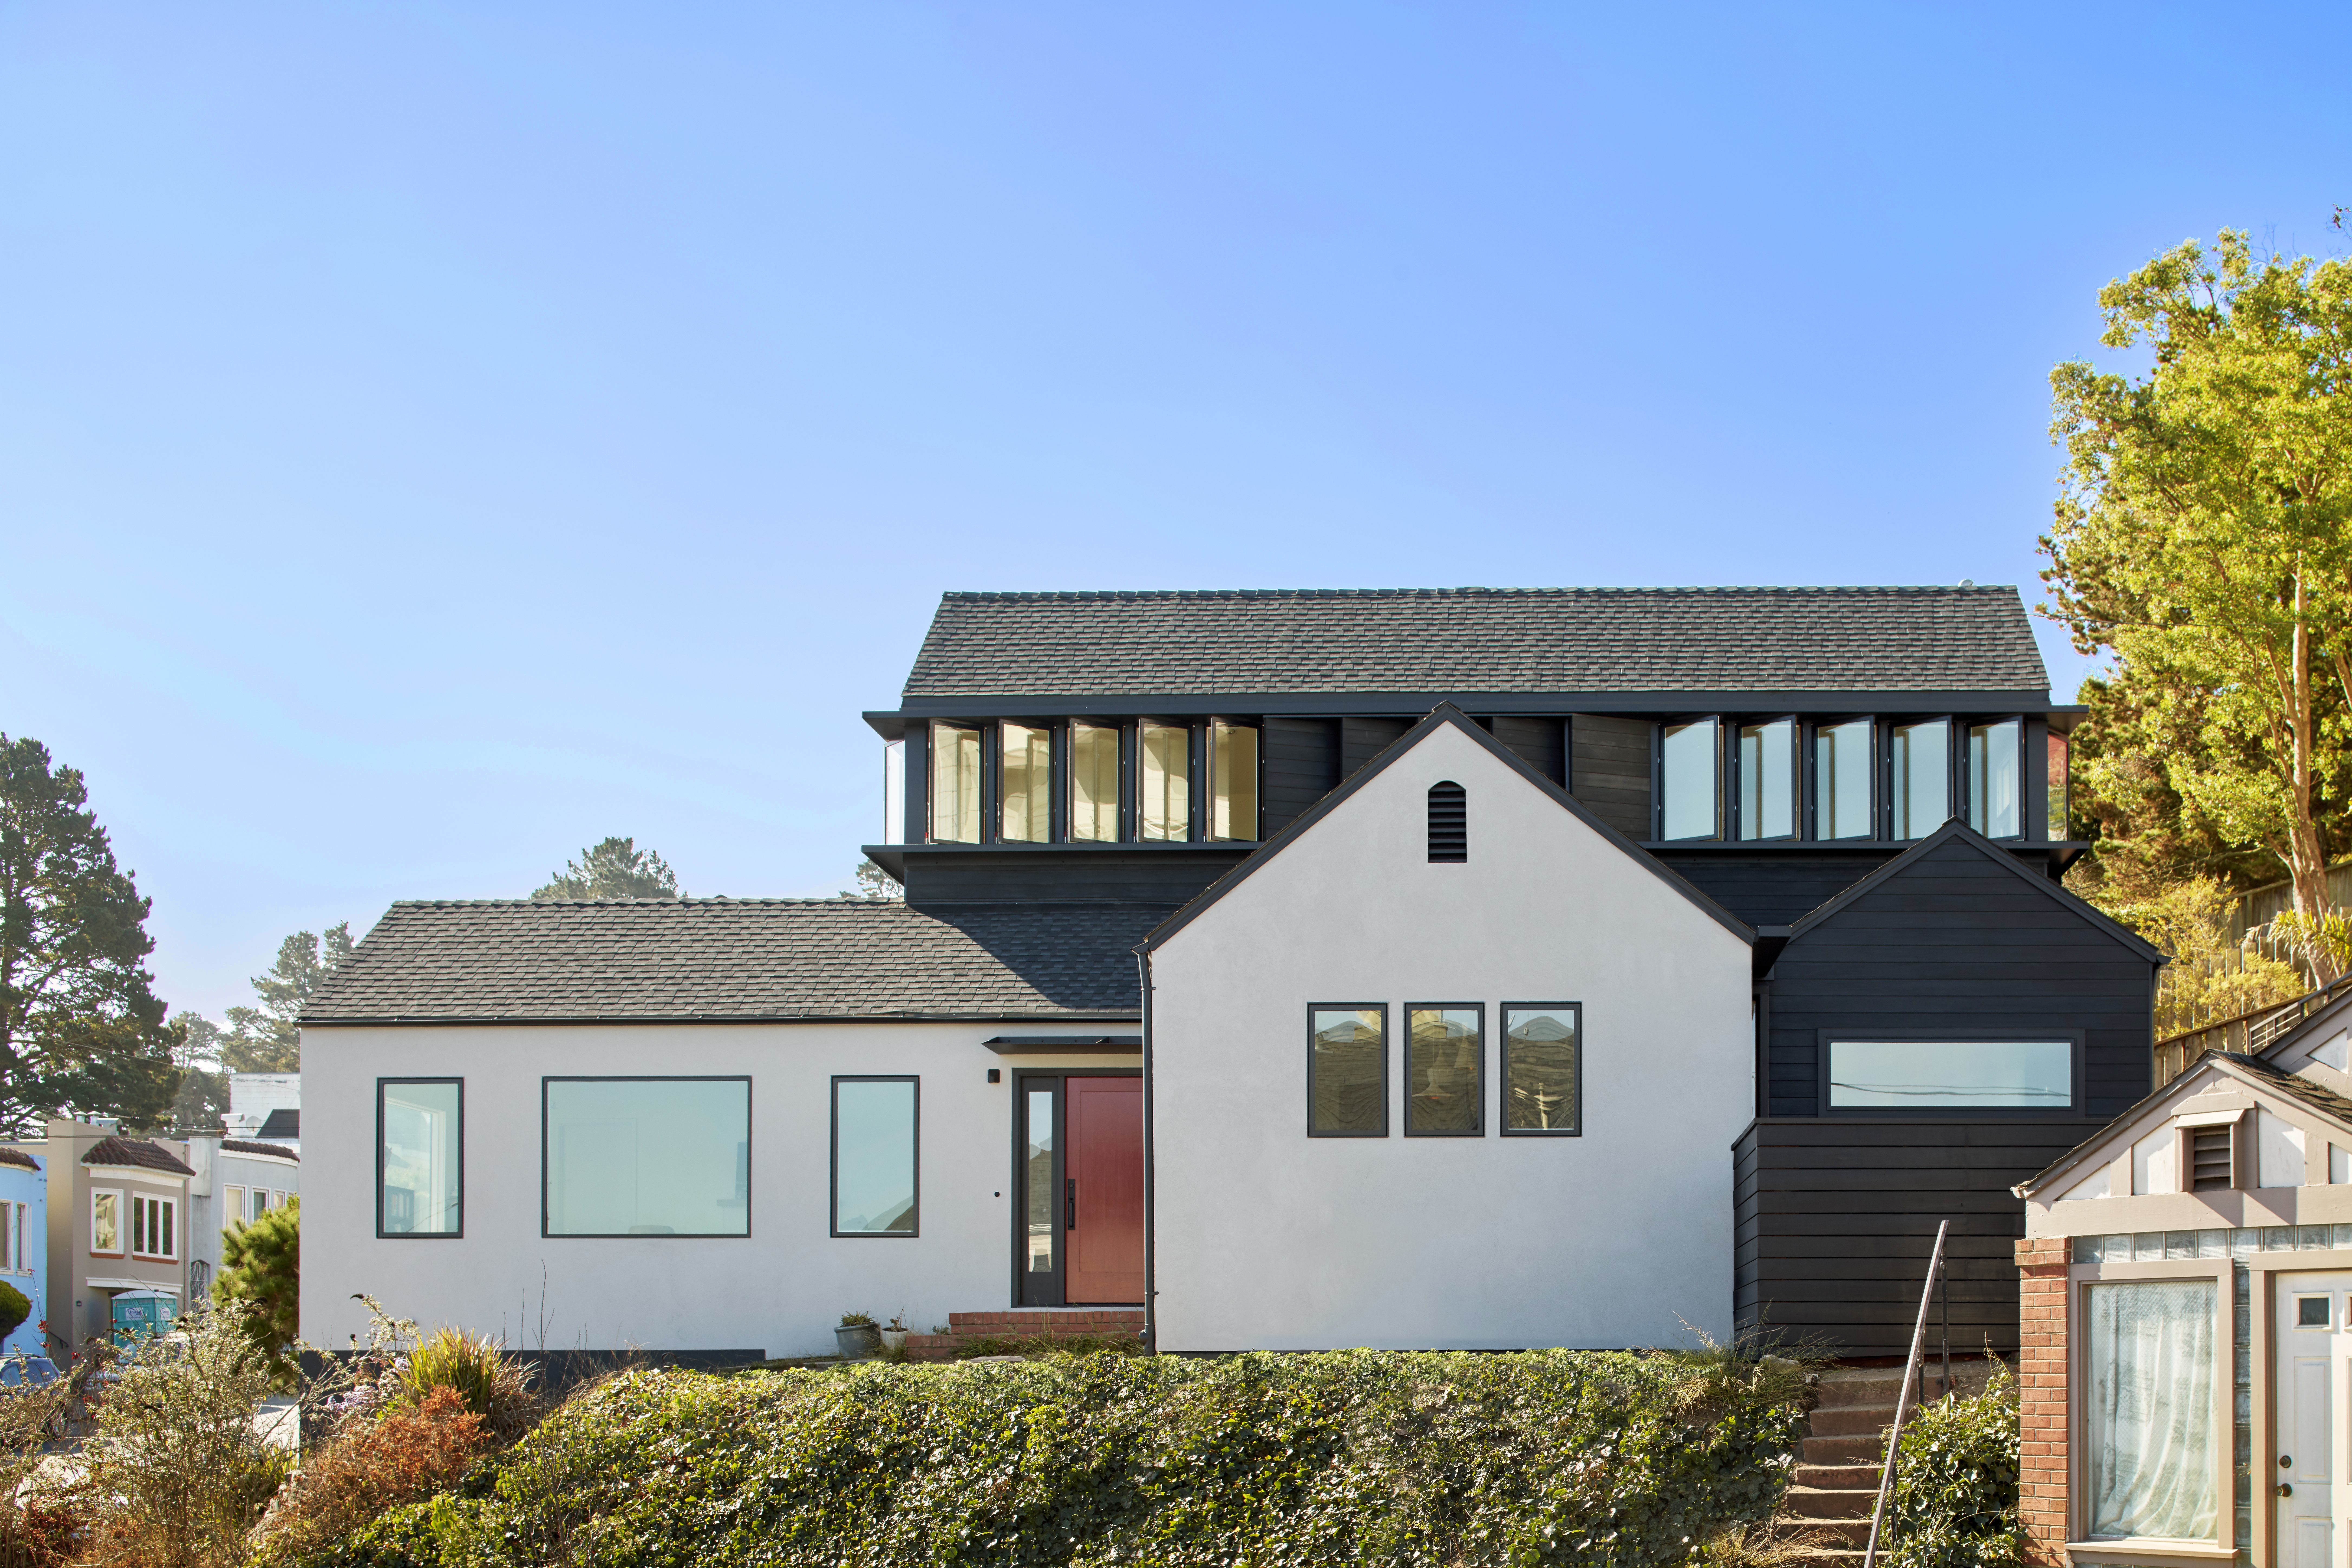 SAW | A-to-Z House, San Francisco, California, 2016. By Bruce Damonte